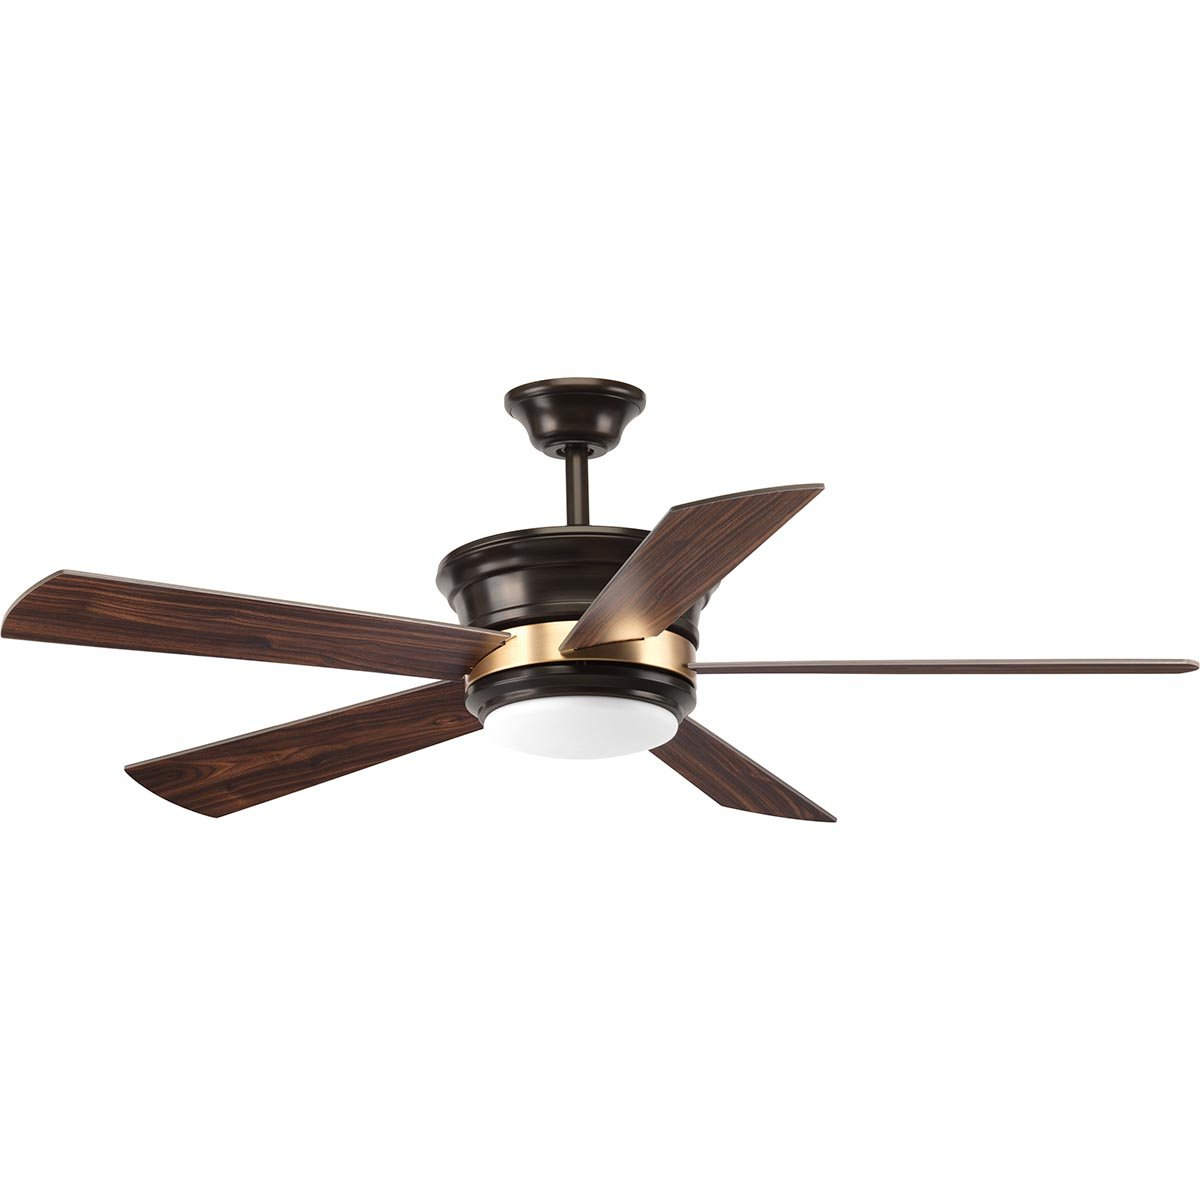 "Red Barrel Studio 54"" Seaton 5 Blade Led Ceiling Fan With Remote Regarding Preferred Bernabe 3 Blade Ceiling Fans (View 17 of 20)"